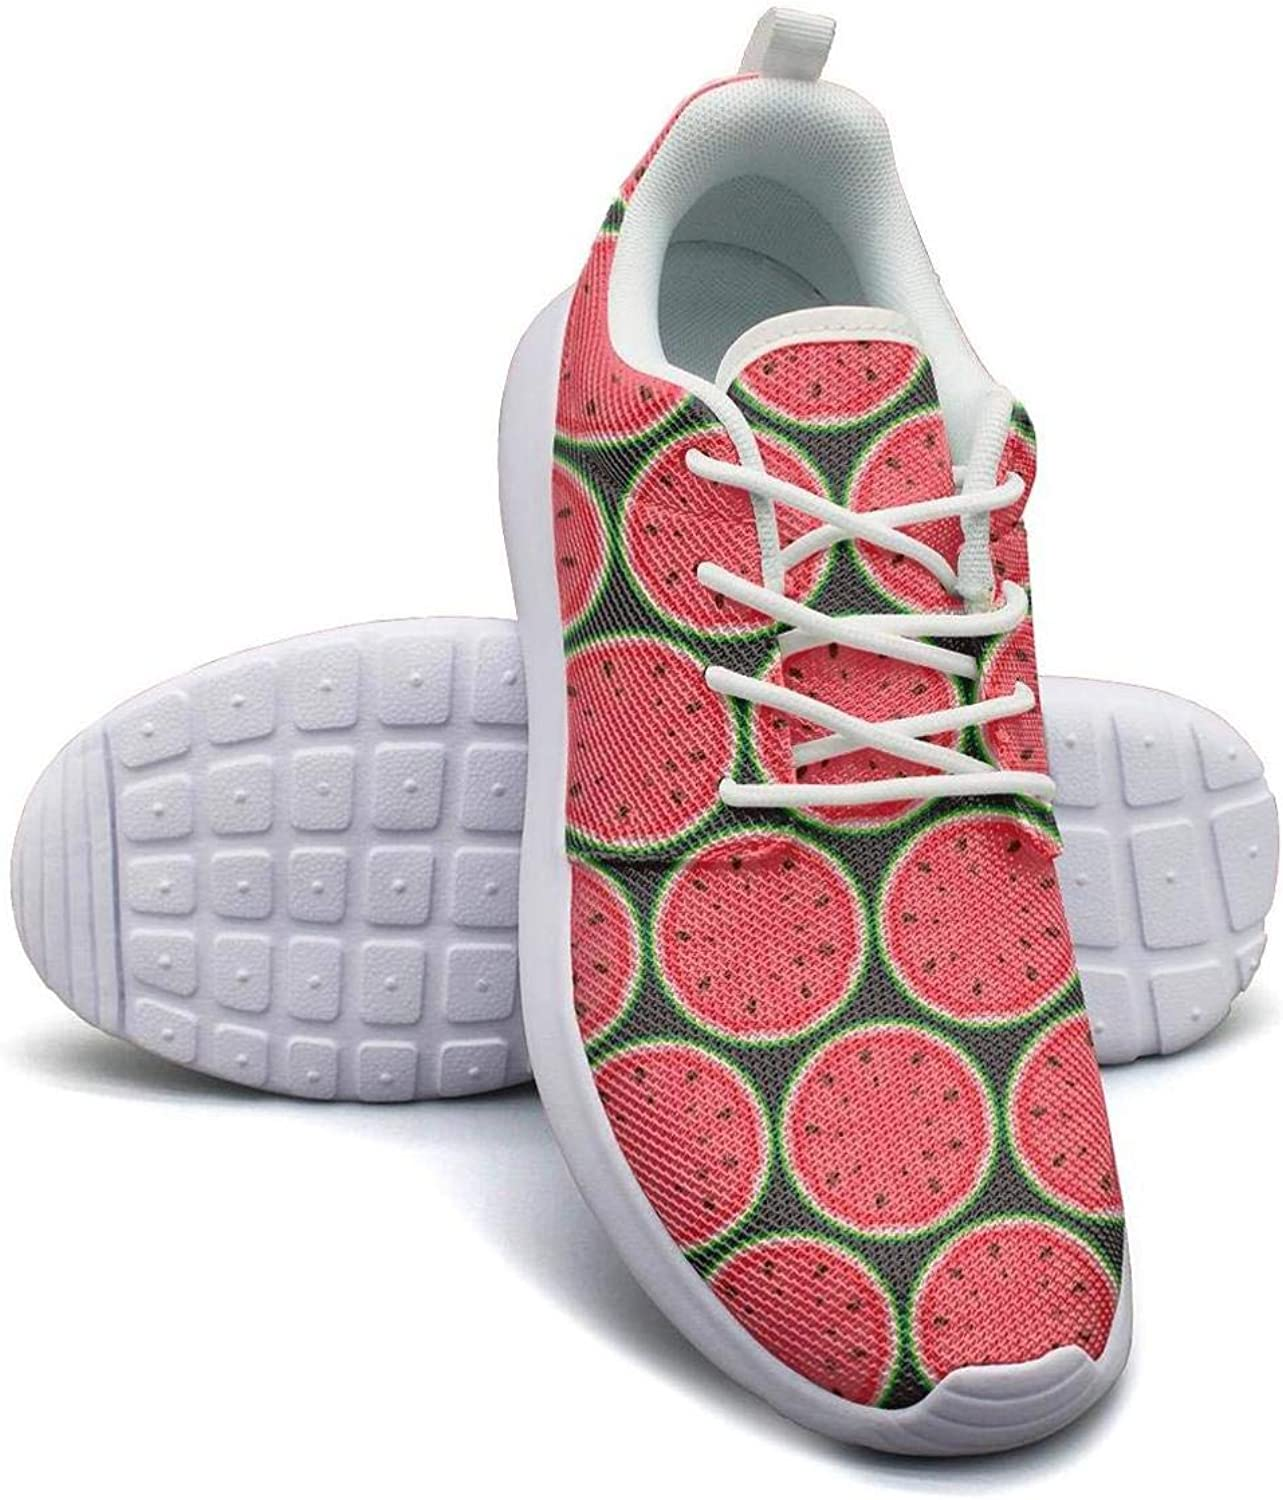 VXCVF Watermelon Seeds Womens Ladies White Gym shoes Breathable Cool